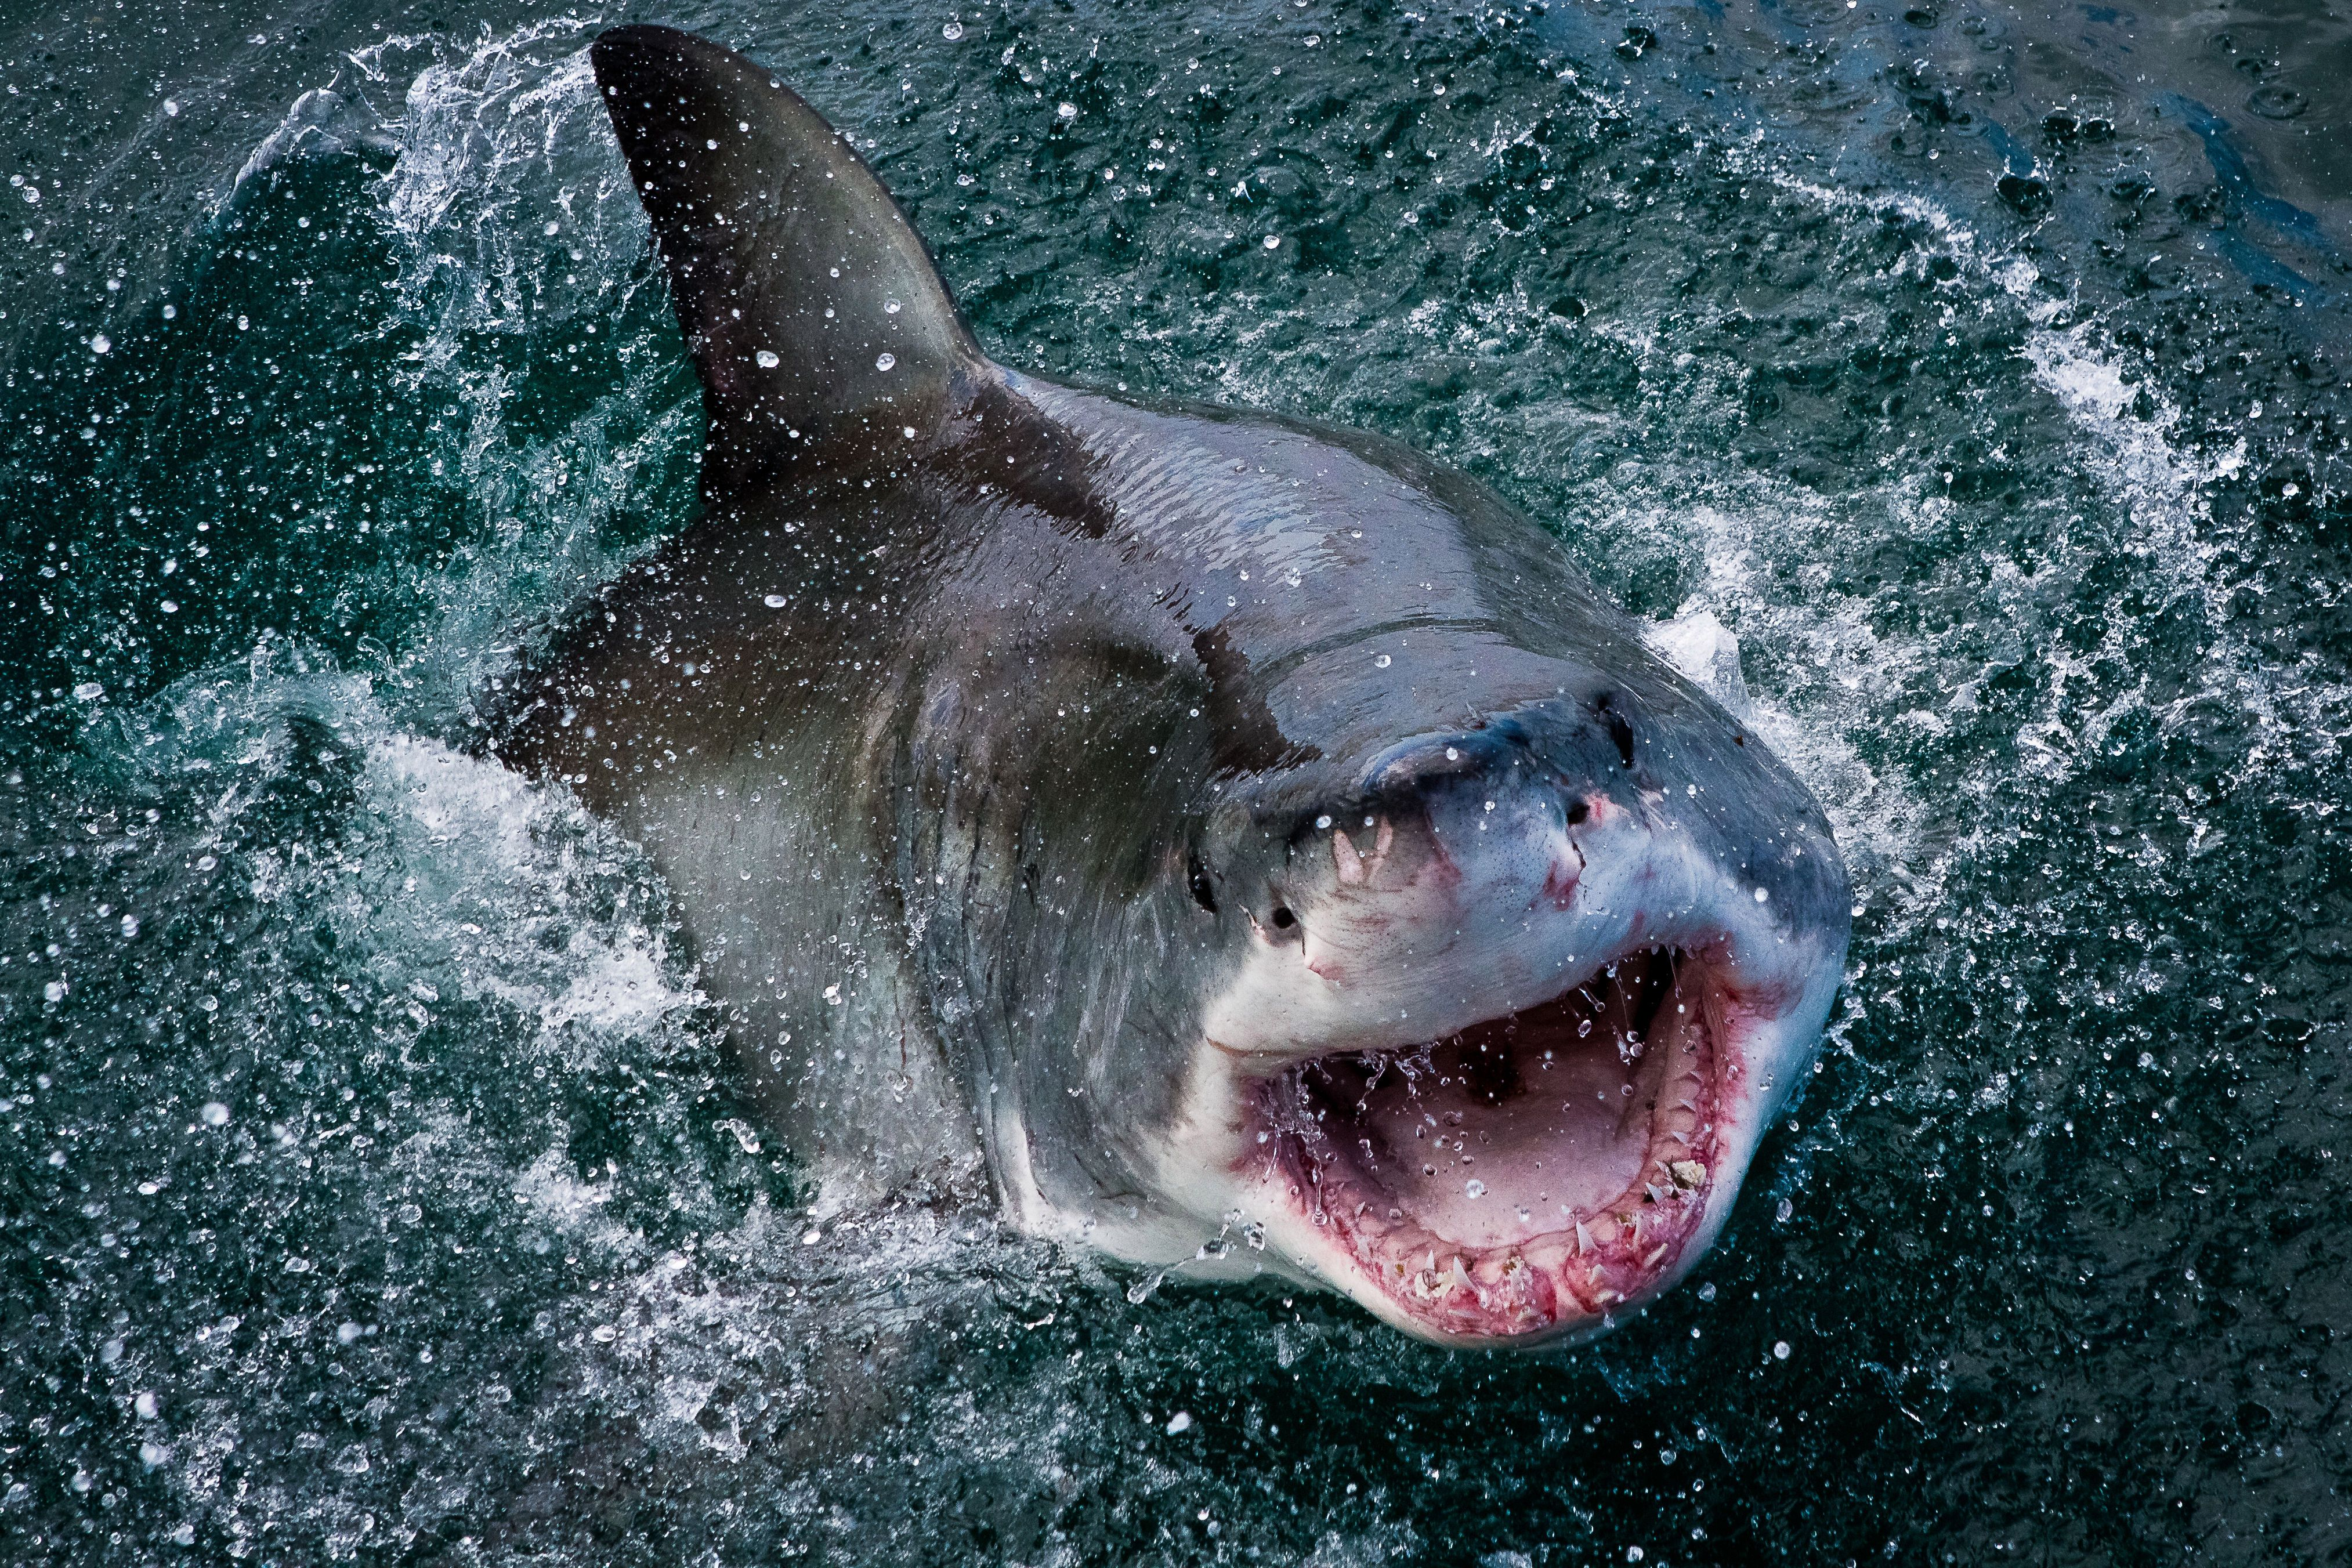 The shark's battle scars can be seen on its nose as it writhes in the water